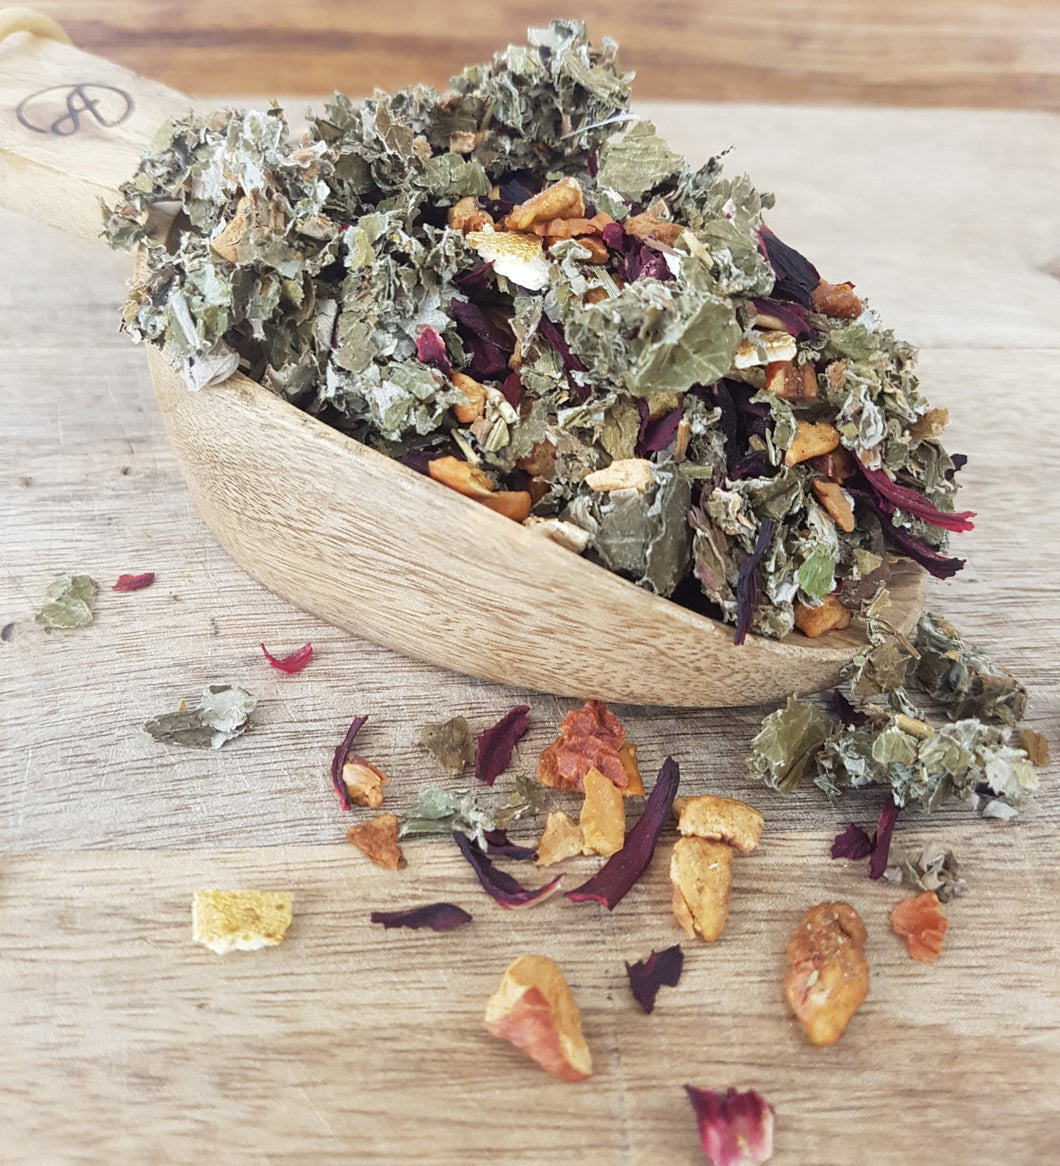 Wild Hibiscus Herbal Tea